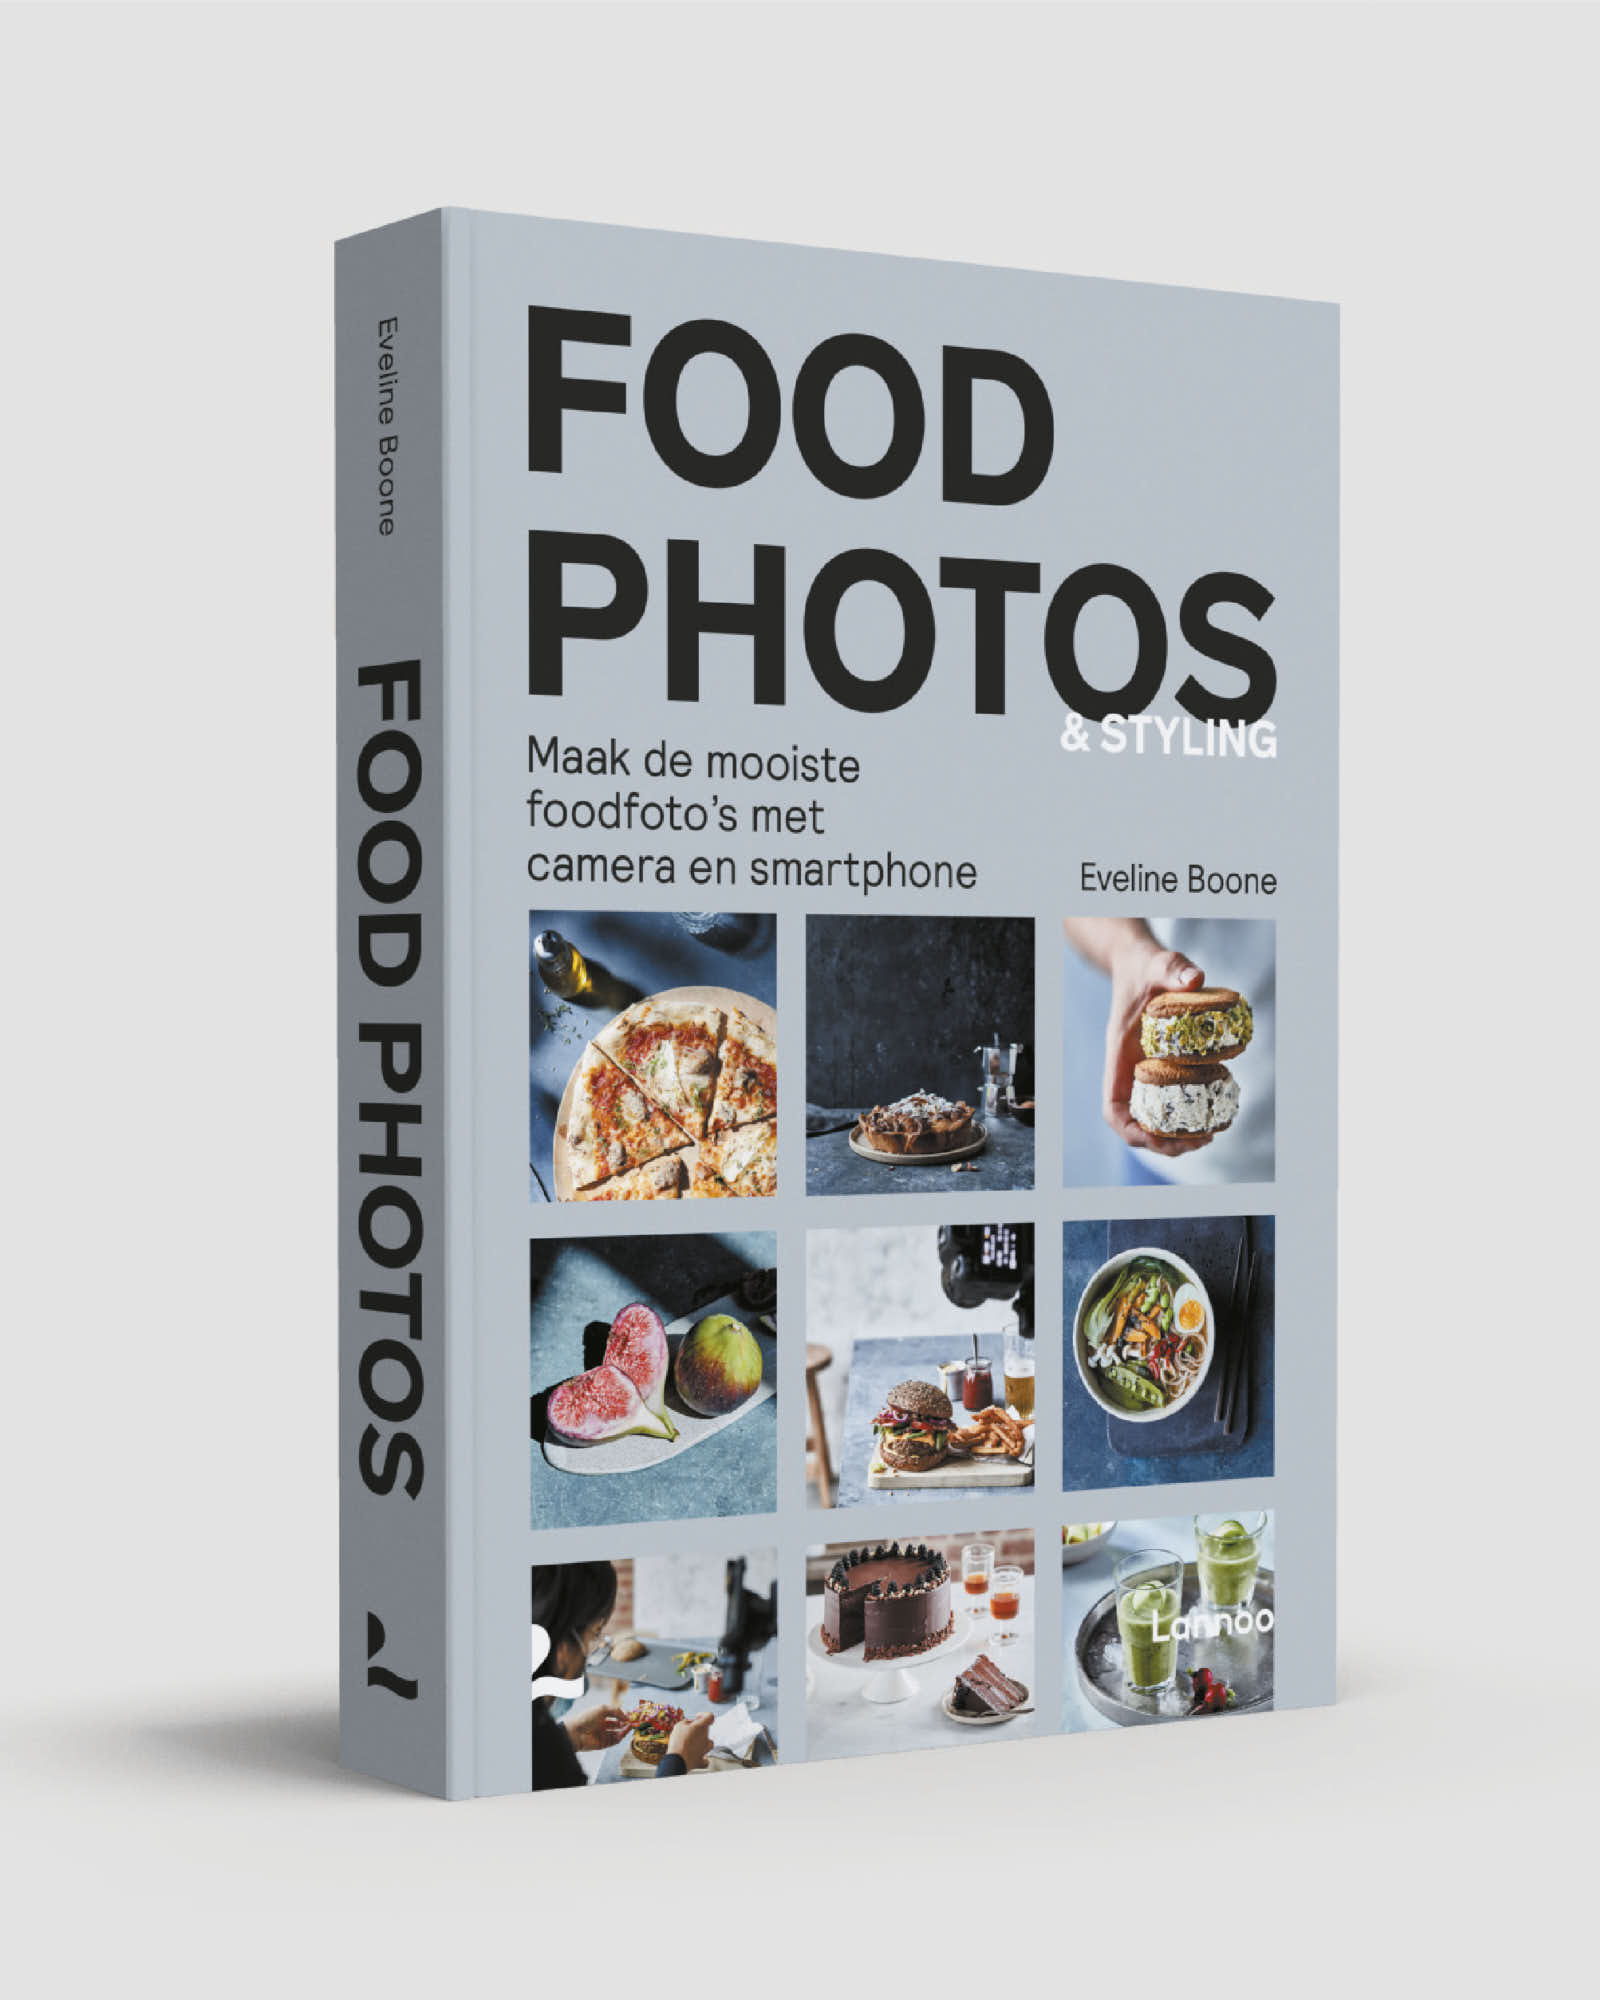 Photo Of A Softcover Book About Food Photos & Food Styling By Eveline Boone